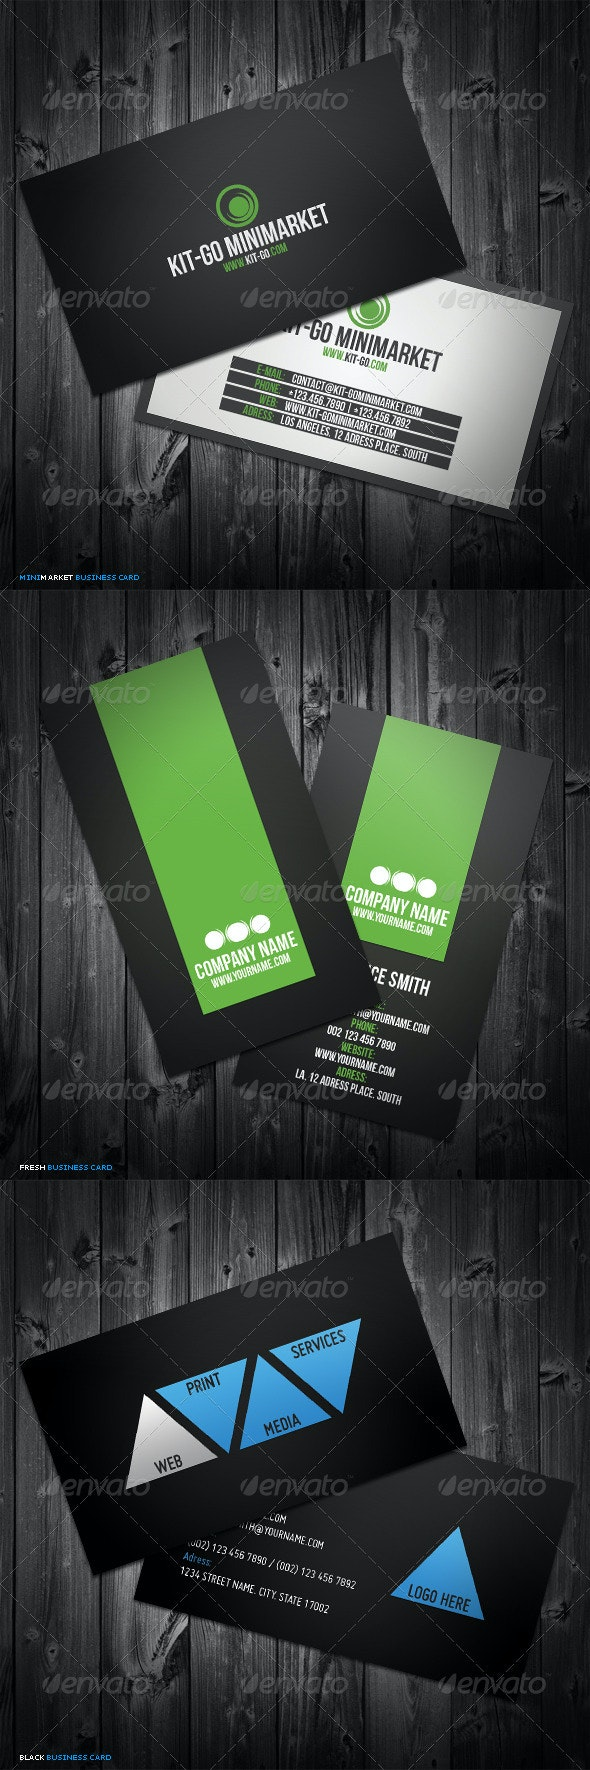 3in1 Business Cards Bundle #5 - Corporate Business Cards